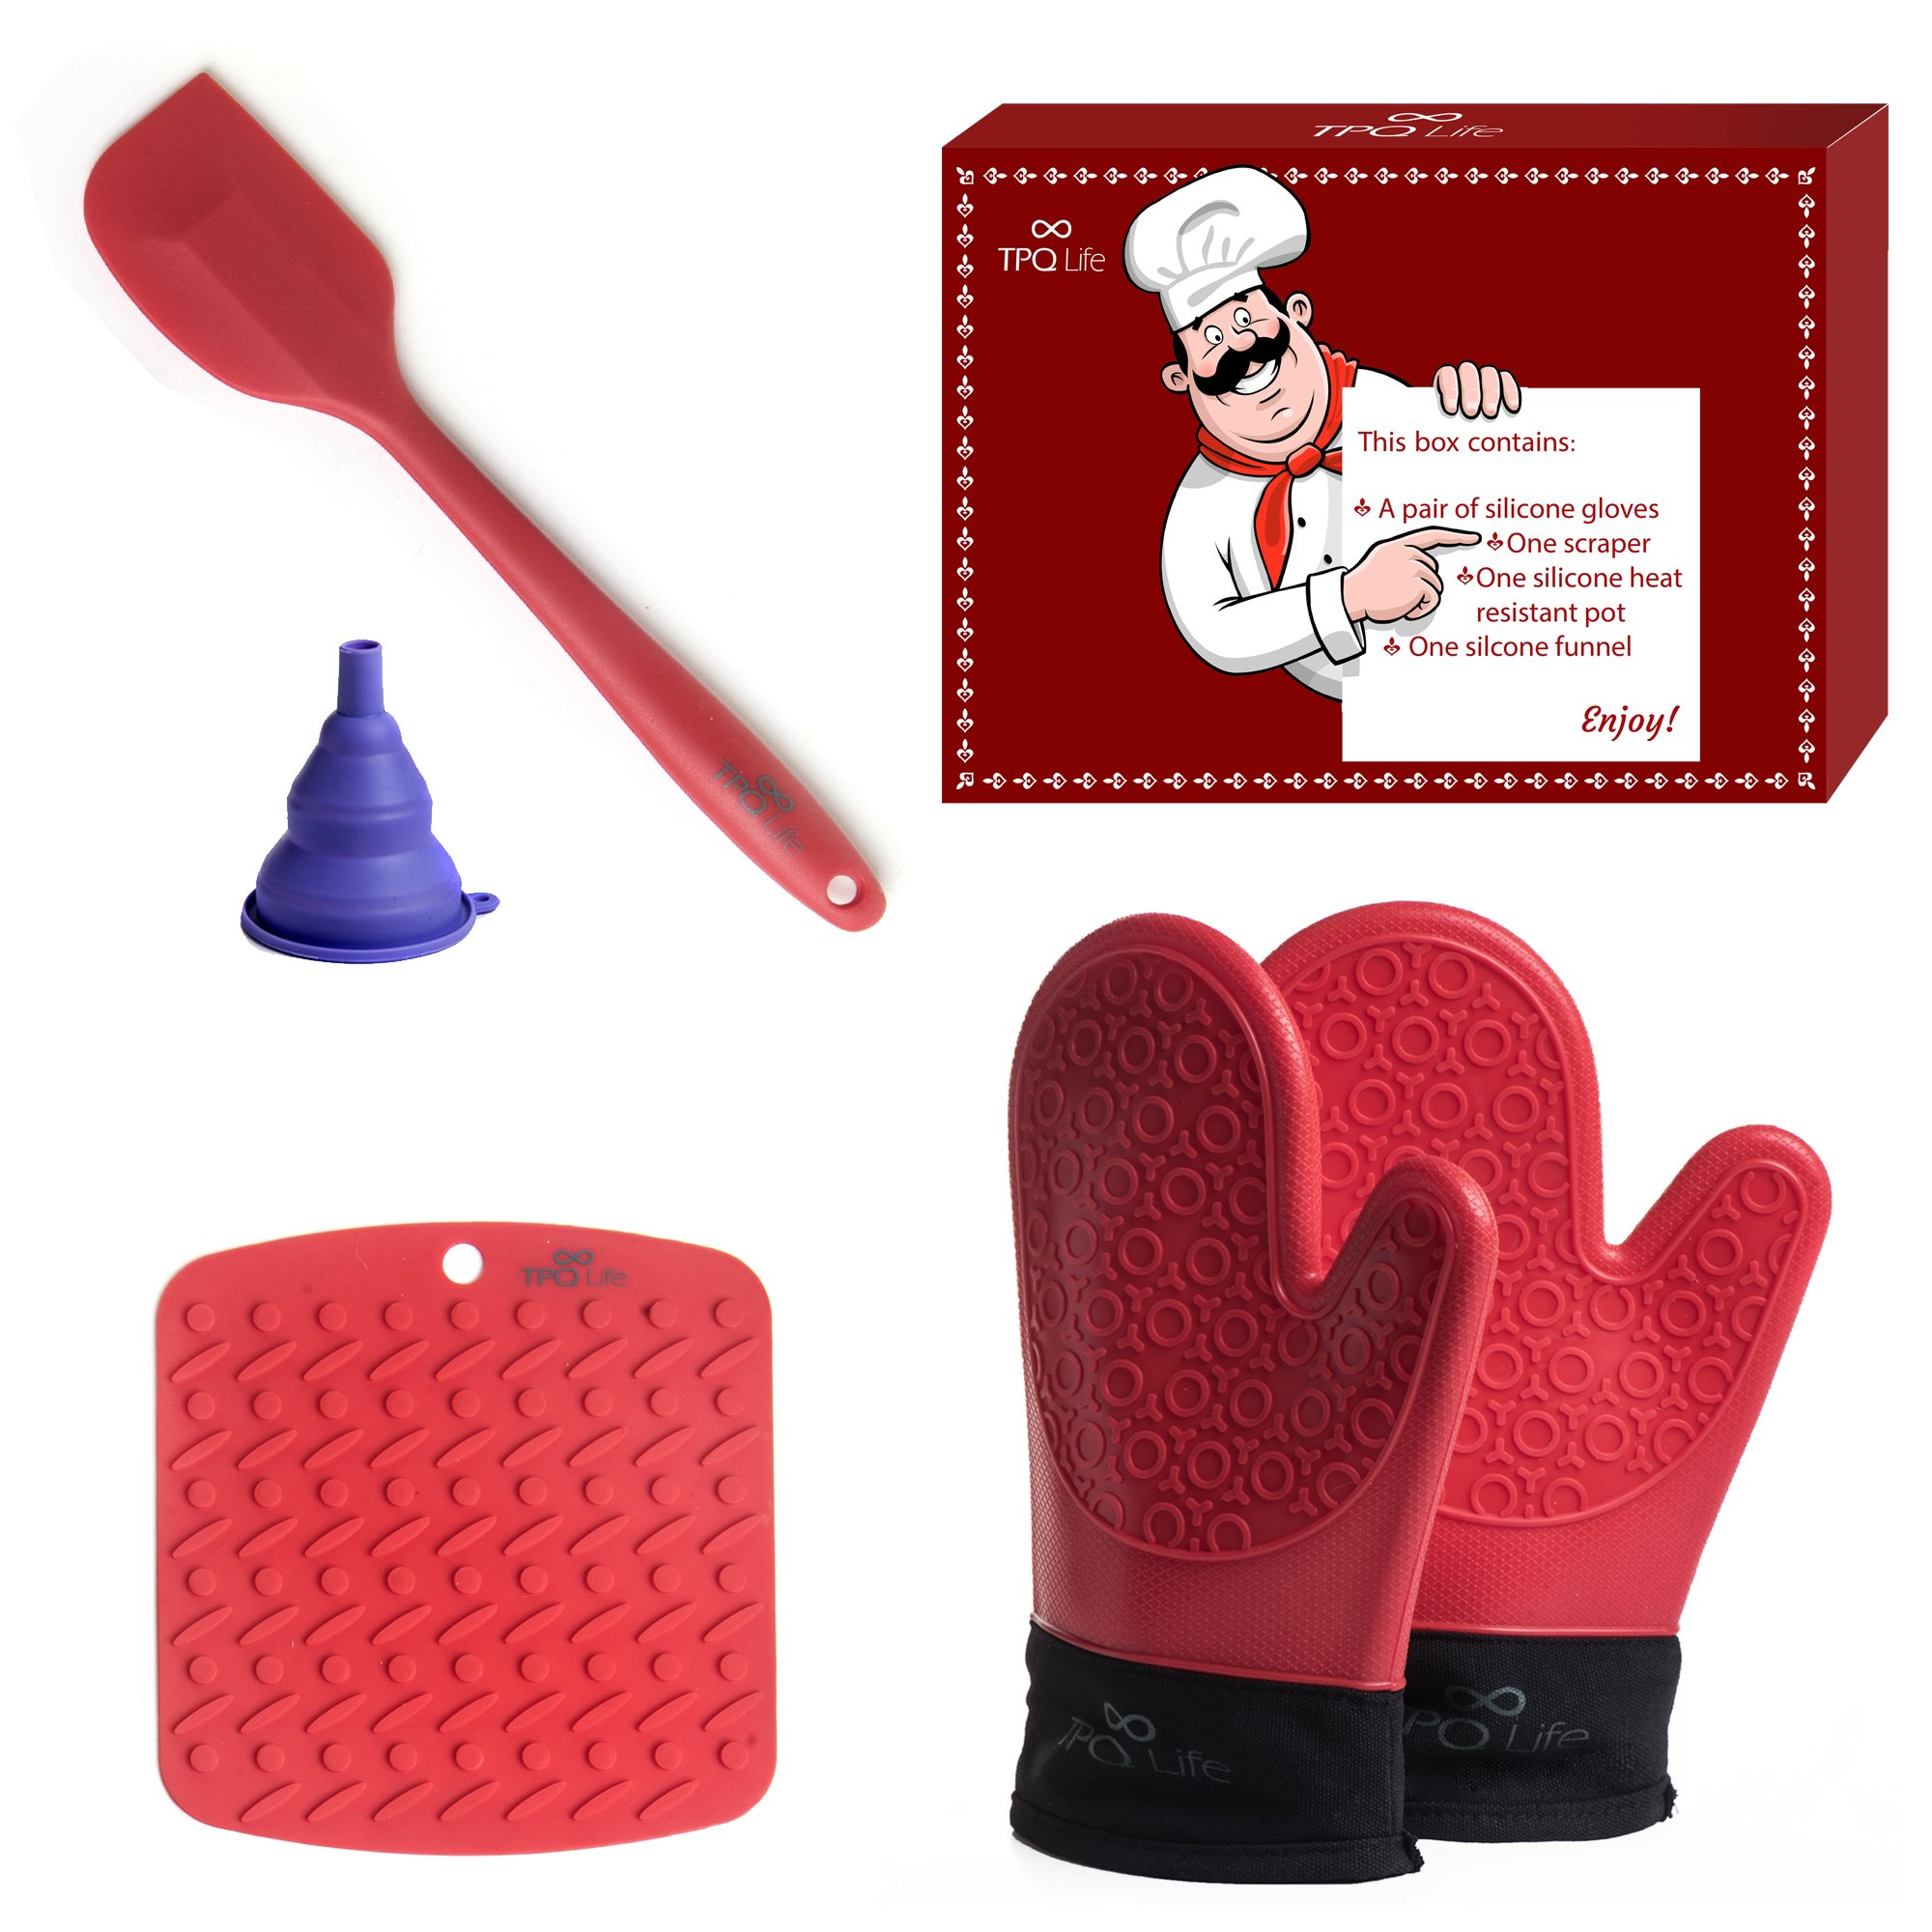 Silicone Oven gloves Pair, Placemat & Spatula Set - 5 Piece Kitchen Ensemble - Top Quality Heat Resistant Non-Slip Oven gloves, Table/Trivet Mat & Scraper (Red) - BONUS Silicone Funnel by TPQ Life